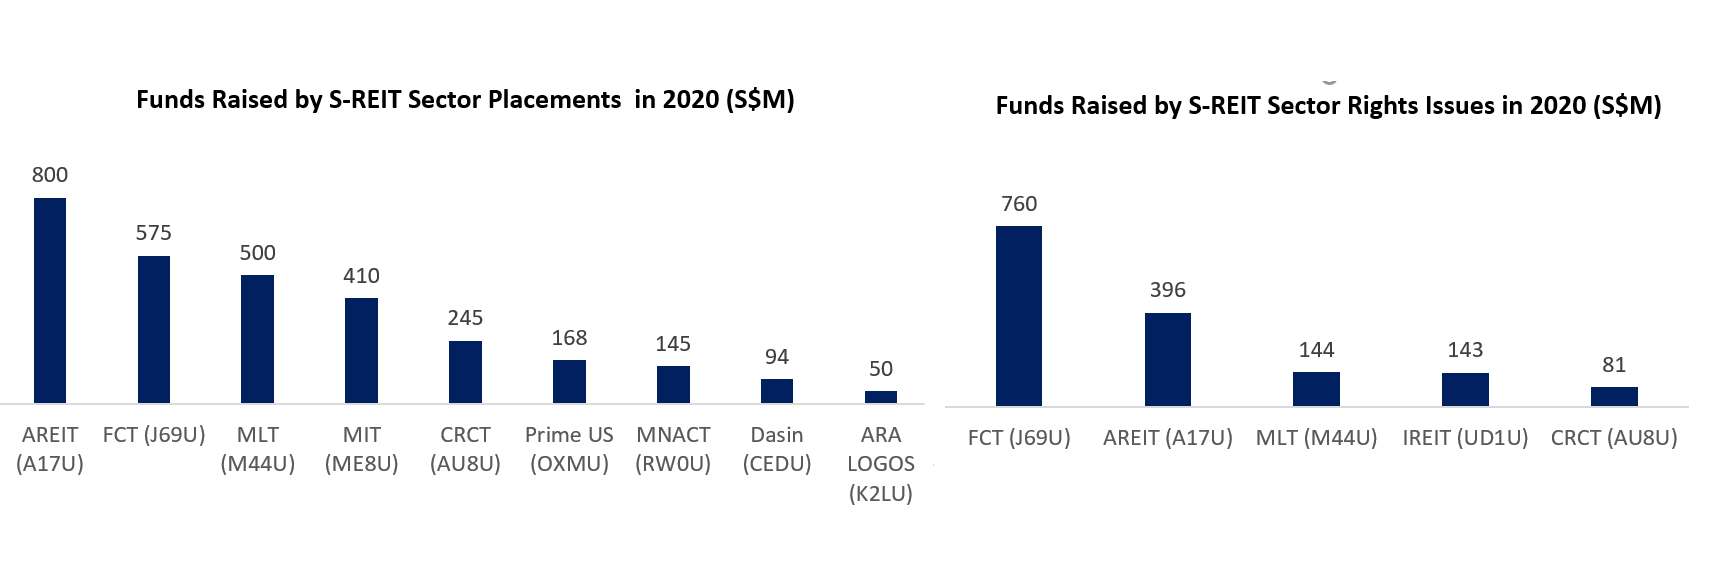 Funds Raised by S-REIT Sector Placements in 2020